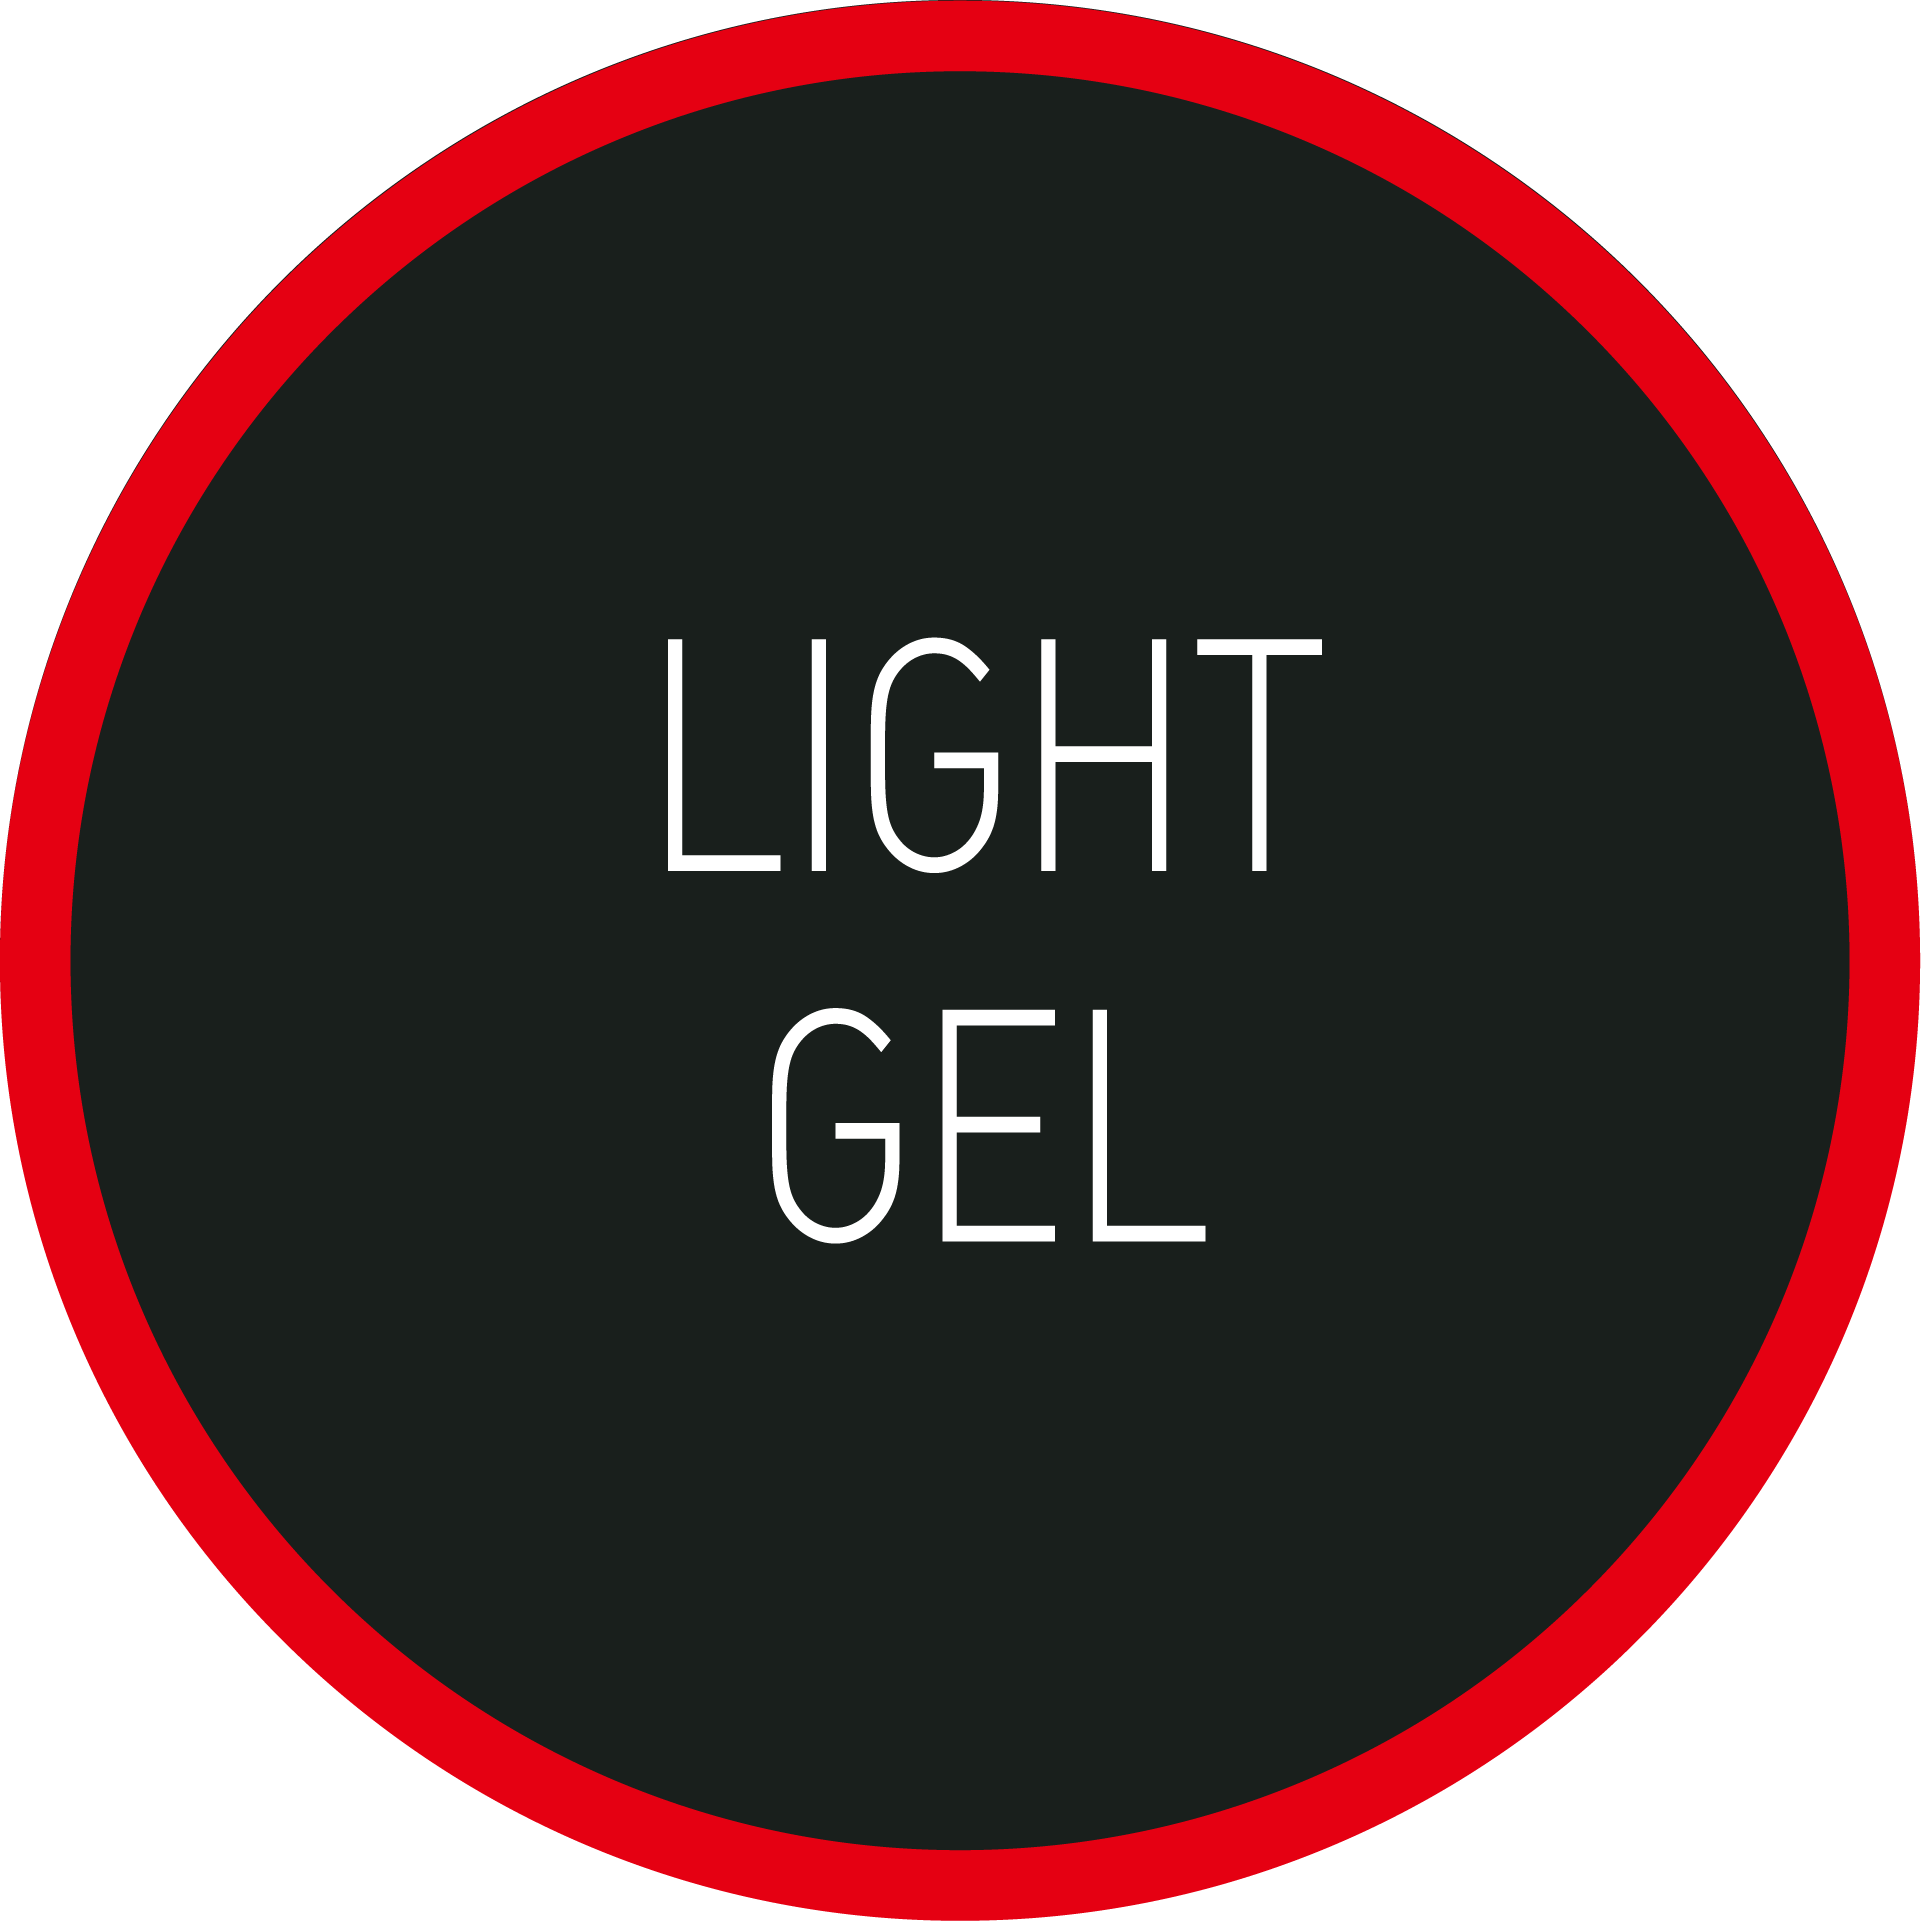 Selle-Italia-icon-02-light-gel